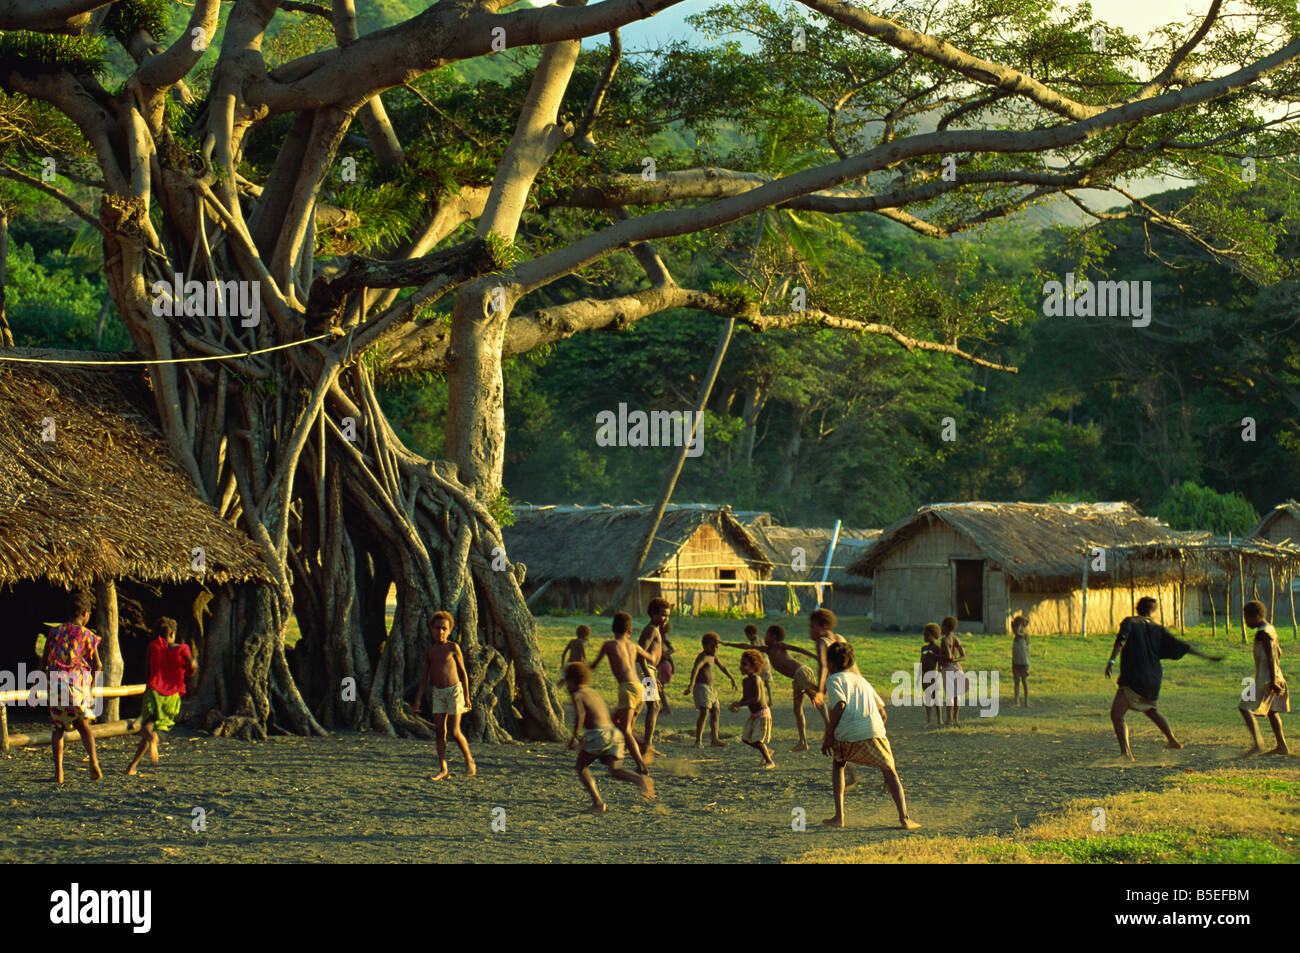 Game of tag, Frum village, Sulphur Bay, Tanna, Vanuatu, Pacific Islands, Pacific - Stock Image